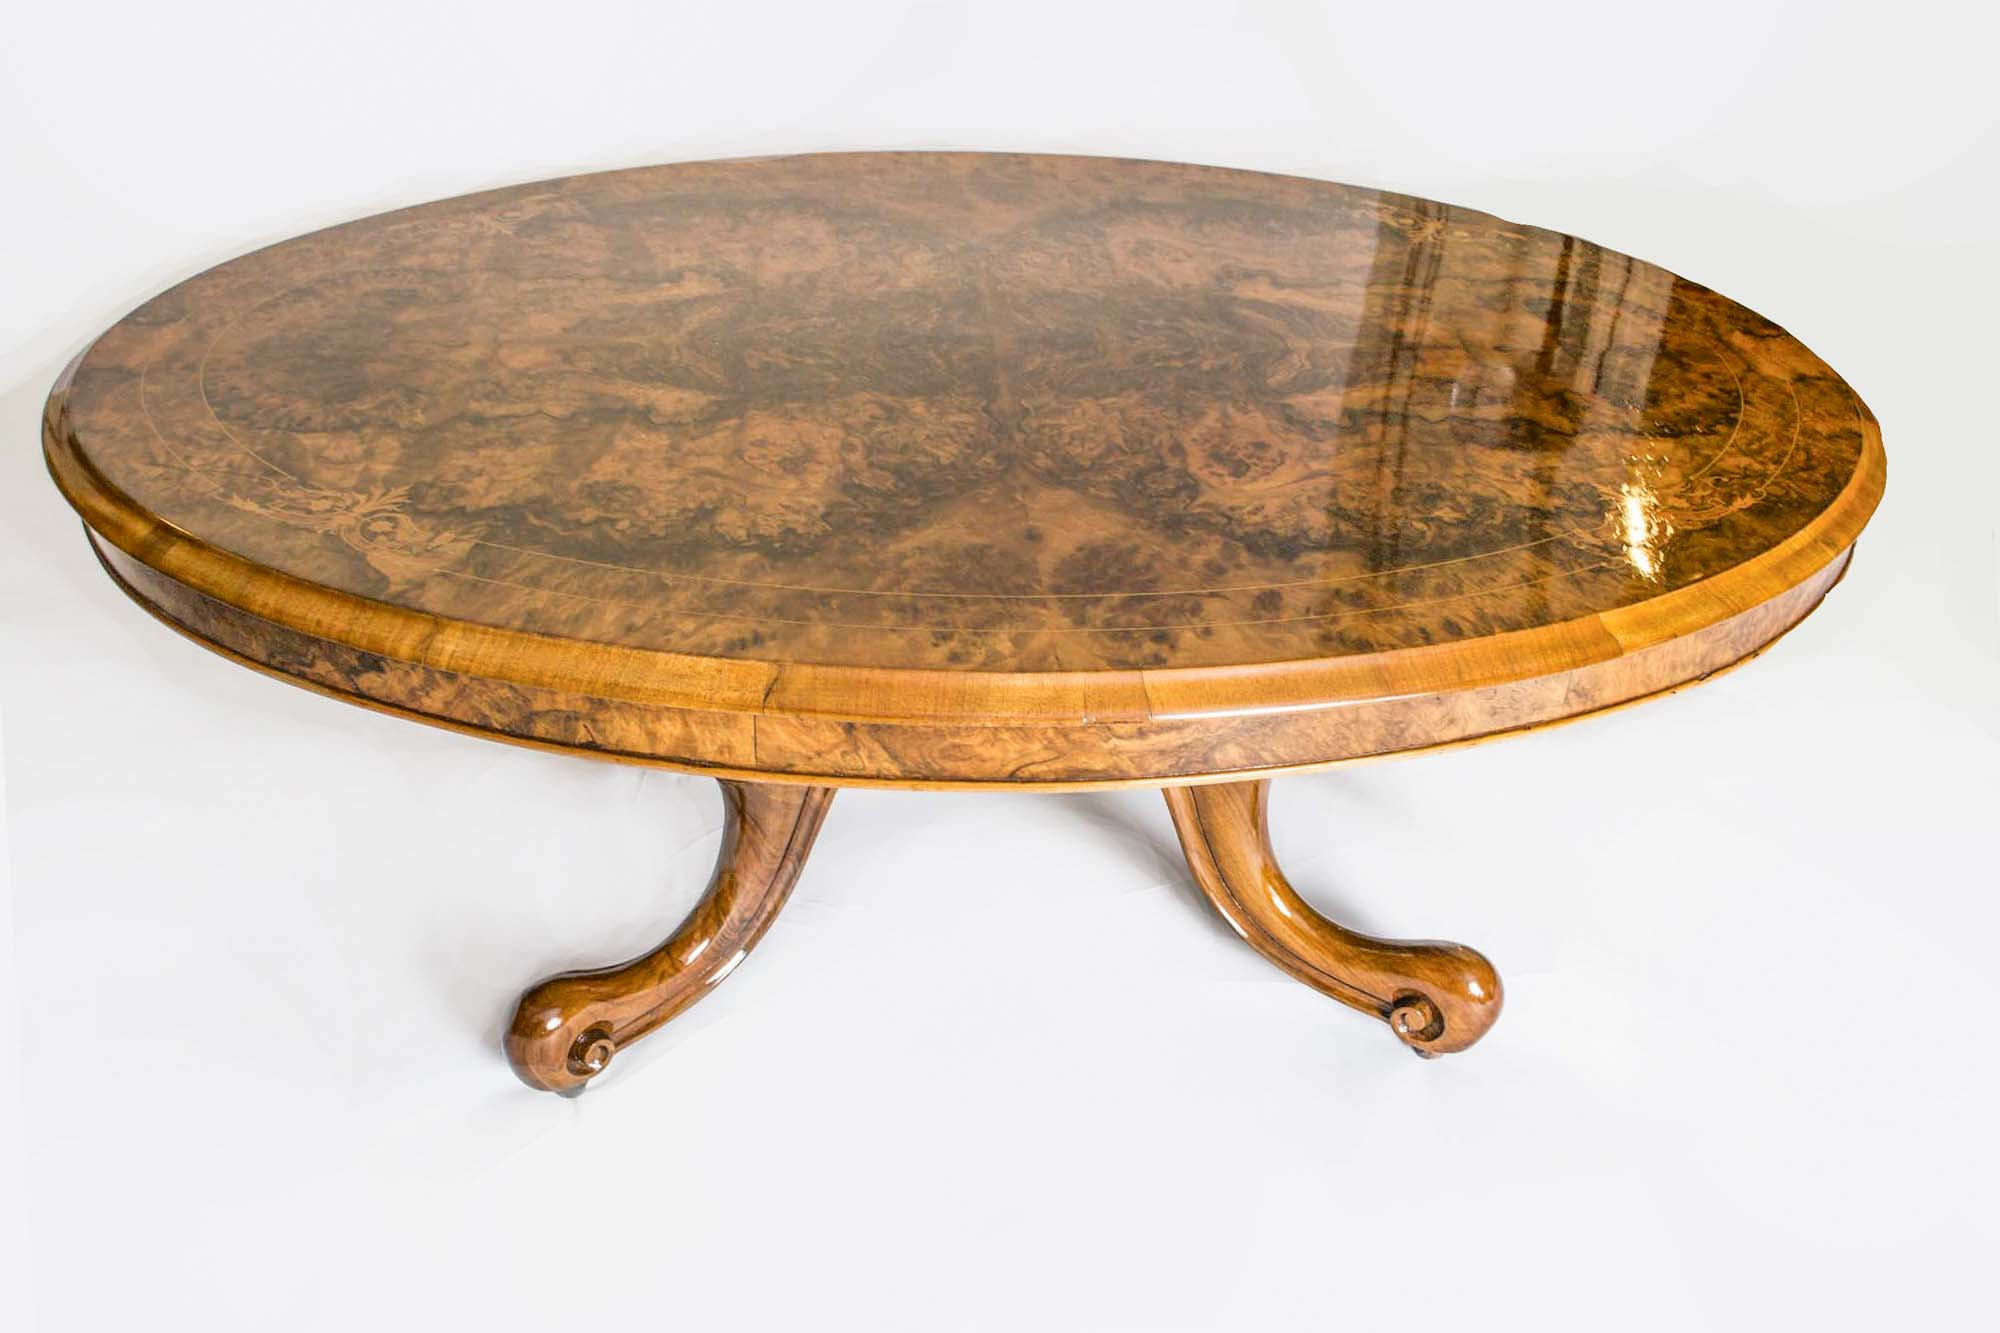 Antique Victorian Inlaid Burr Walnut Coffee Table c1860